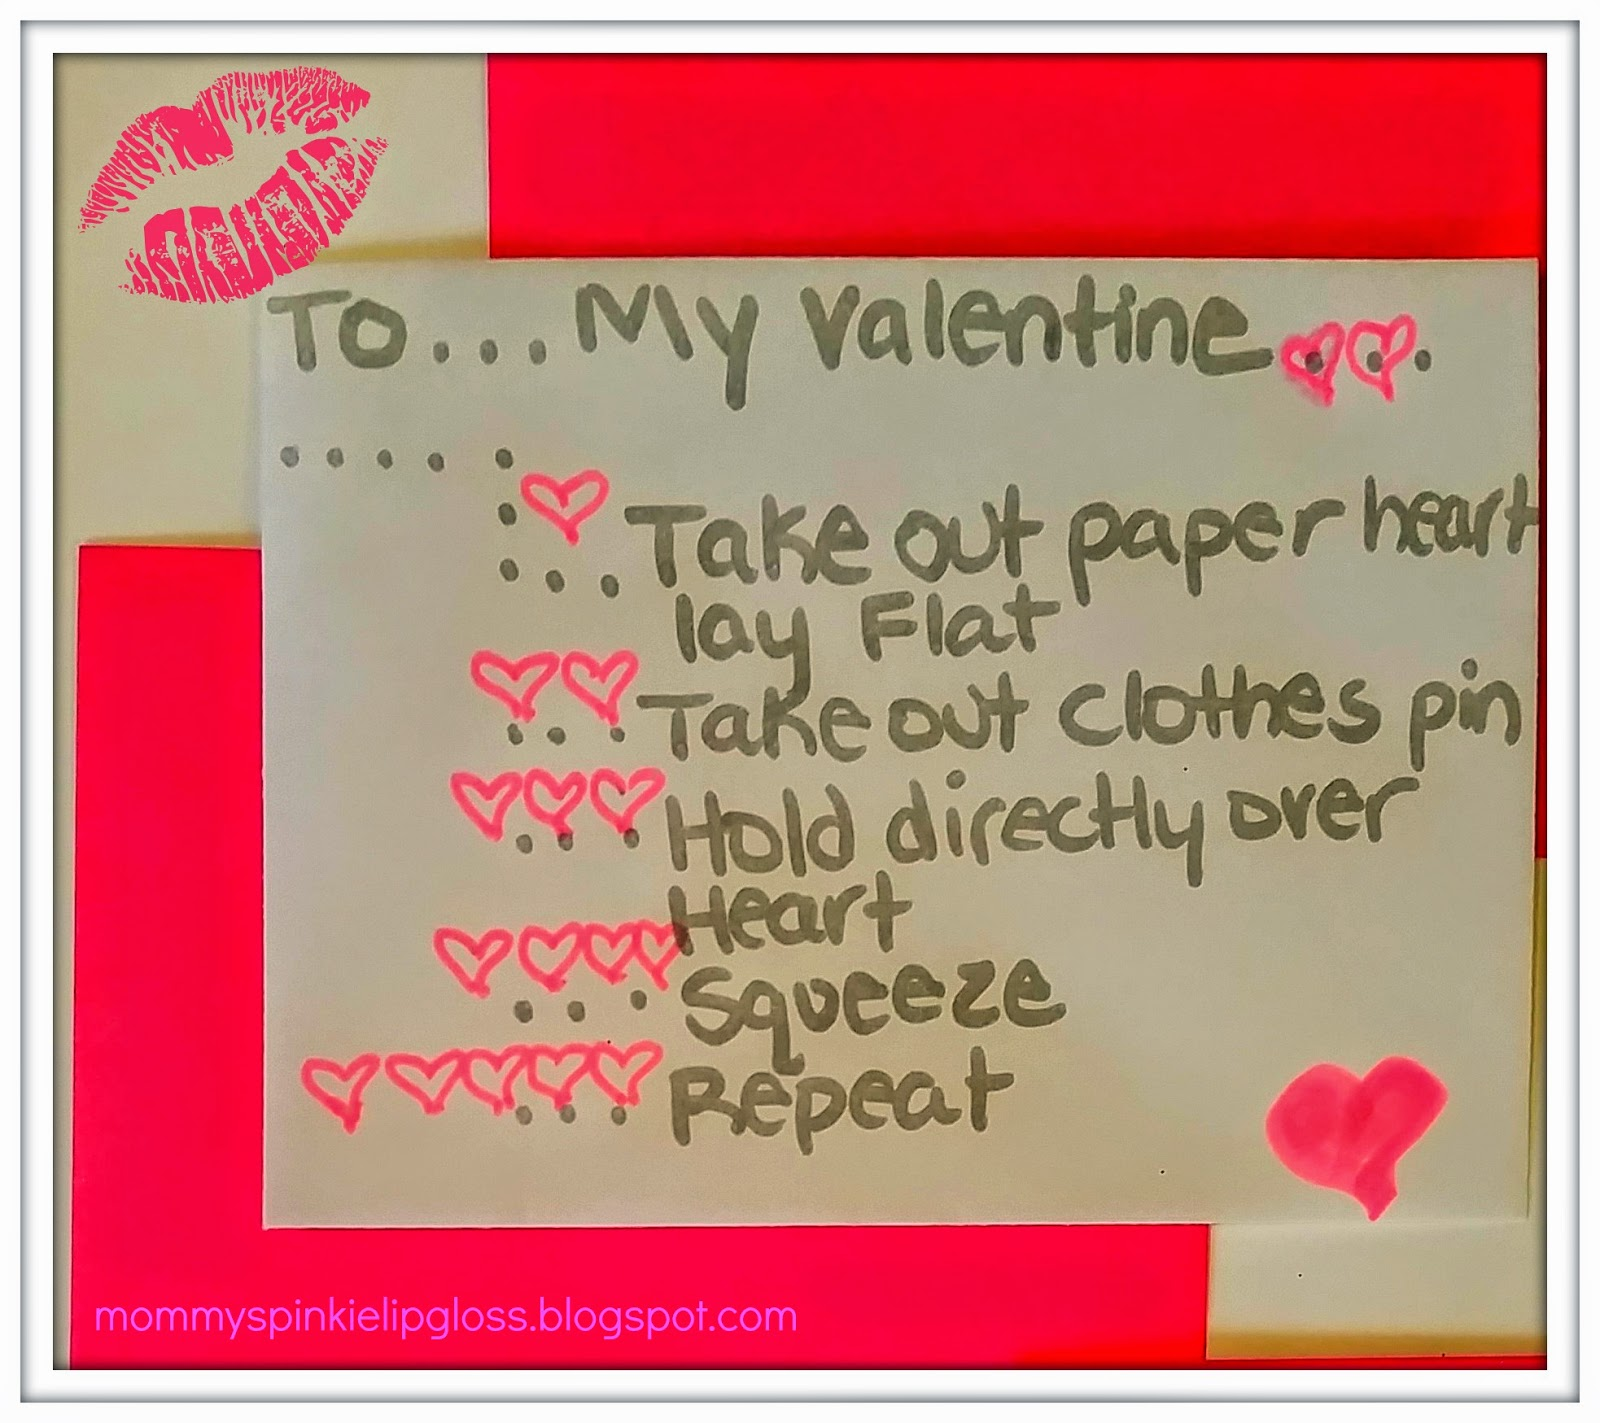 Valentines games from mommyspinkielipgloss.blogspot.com